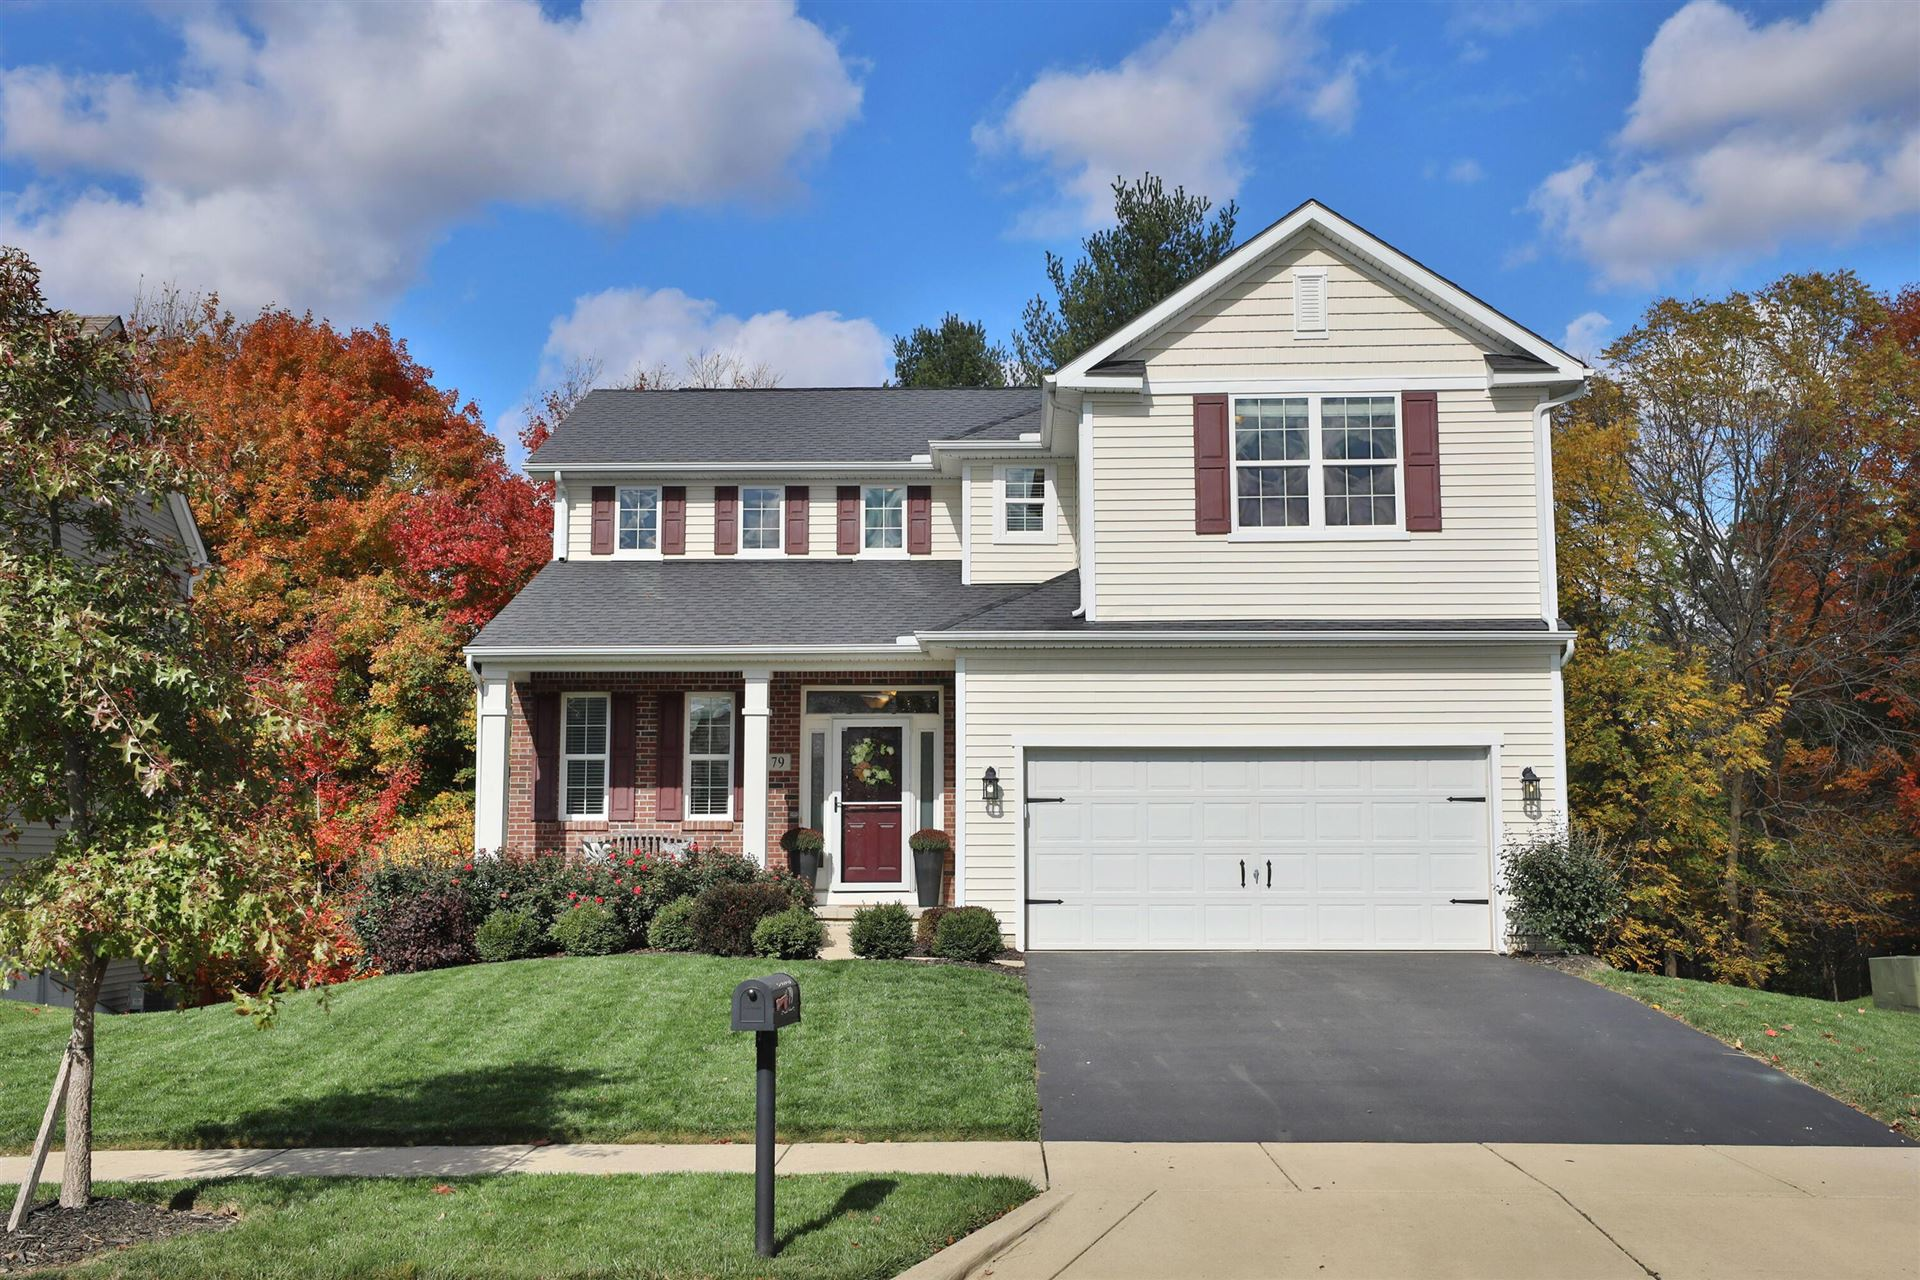 Photo of 79 Winding Valley Drive, Delaware, OH 43015 (MLS # 221020103)